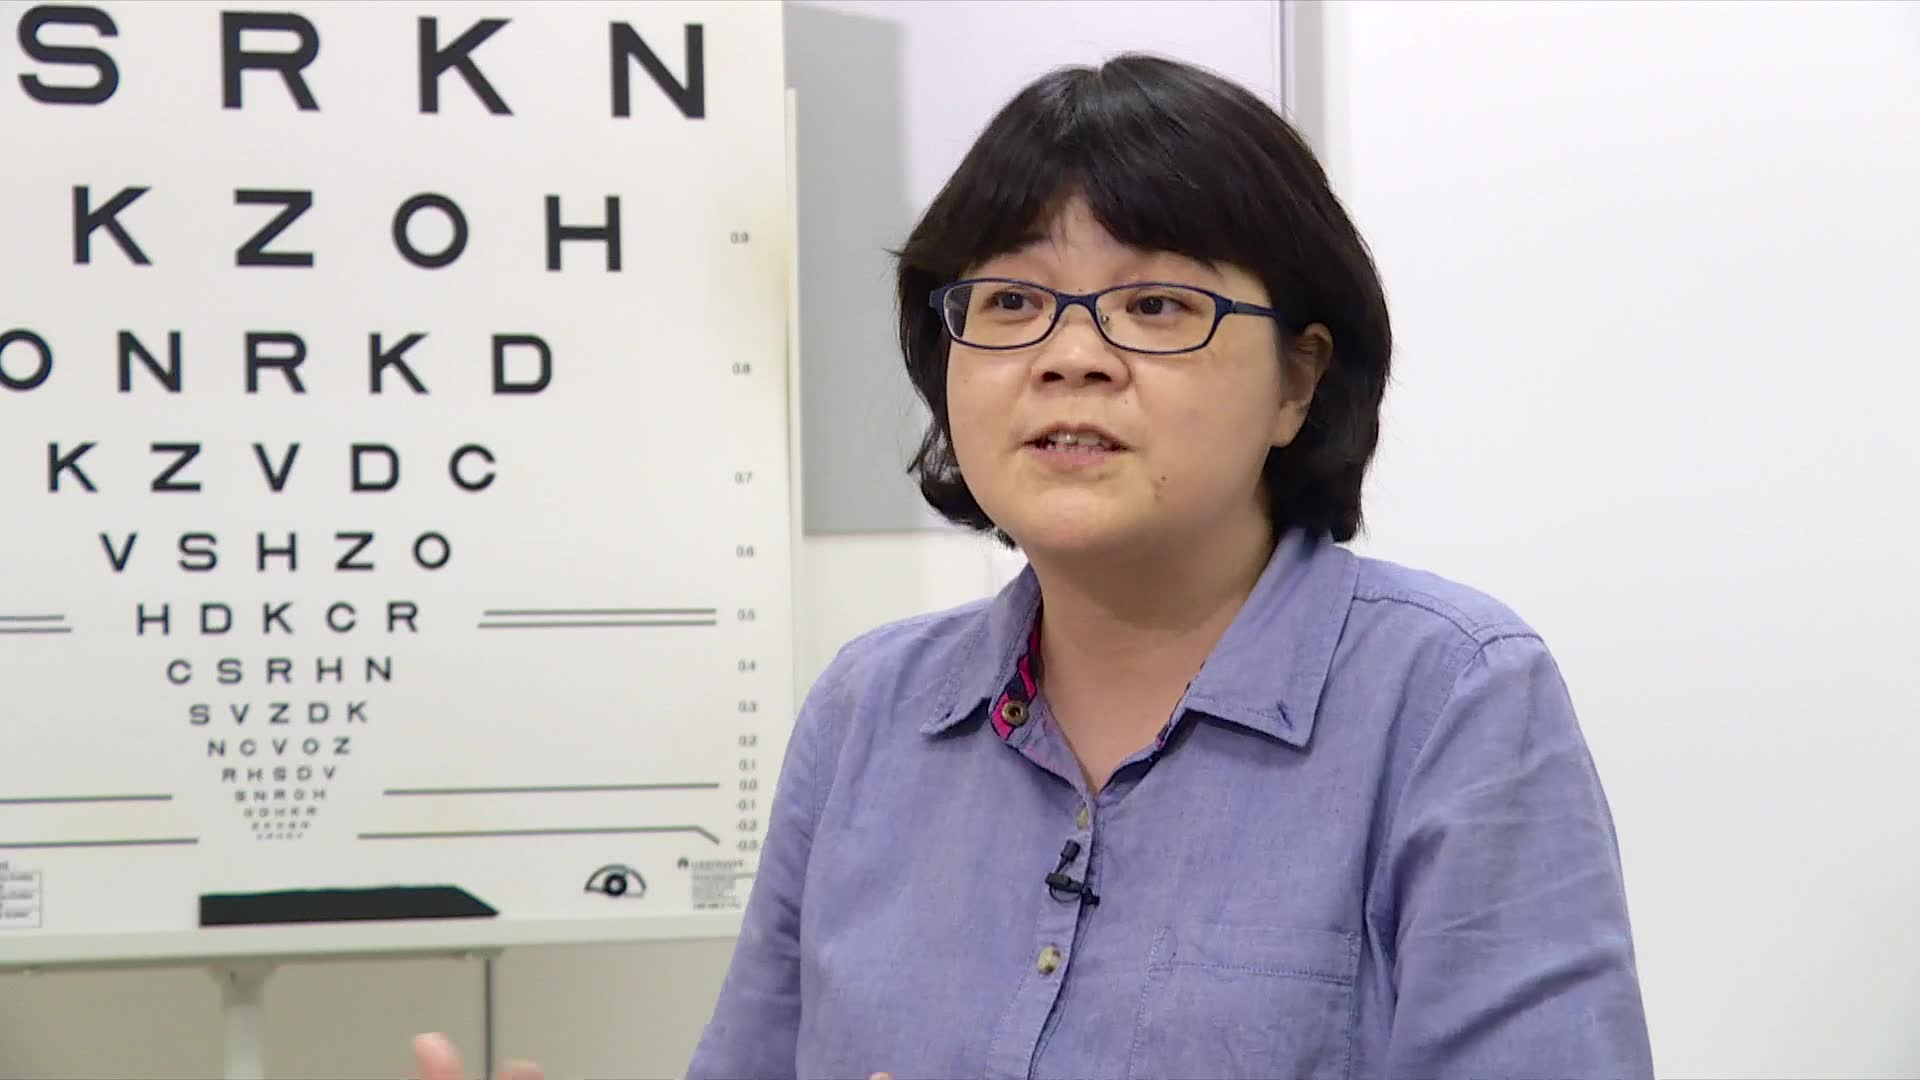 Meet the recipients of Singapore's highest honours for research scientists and engineers | Video